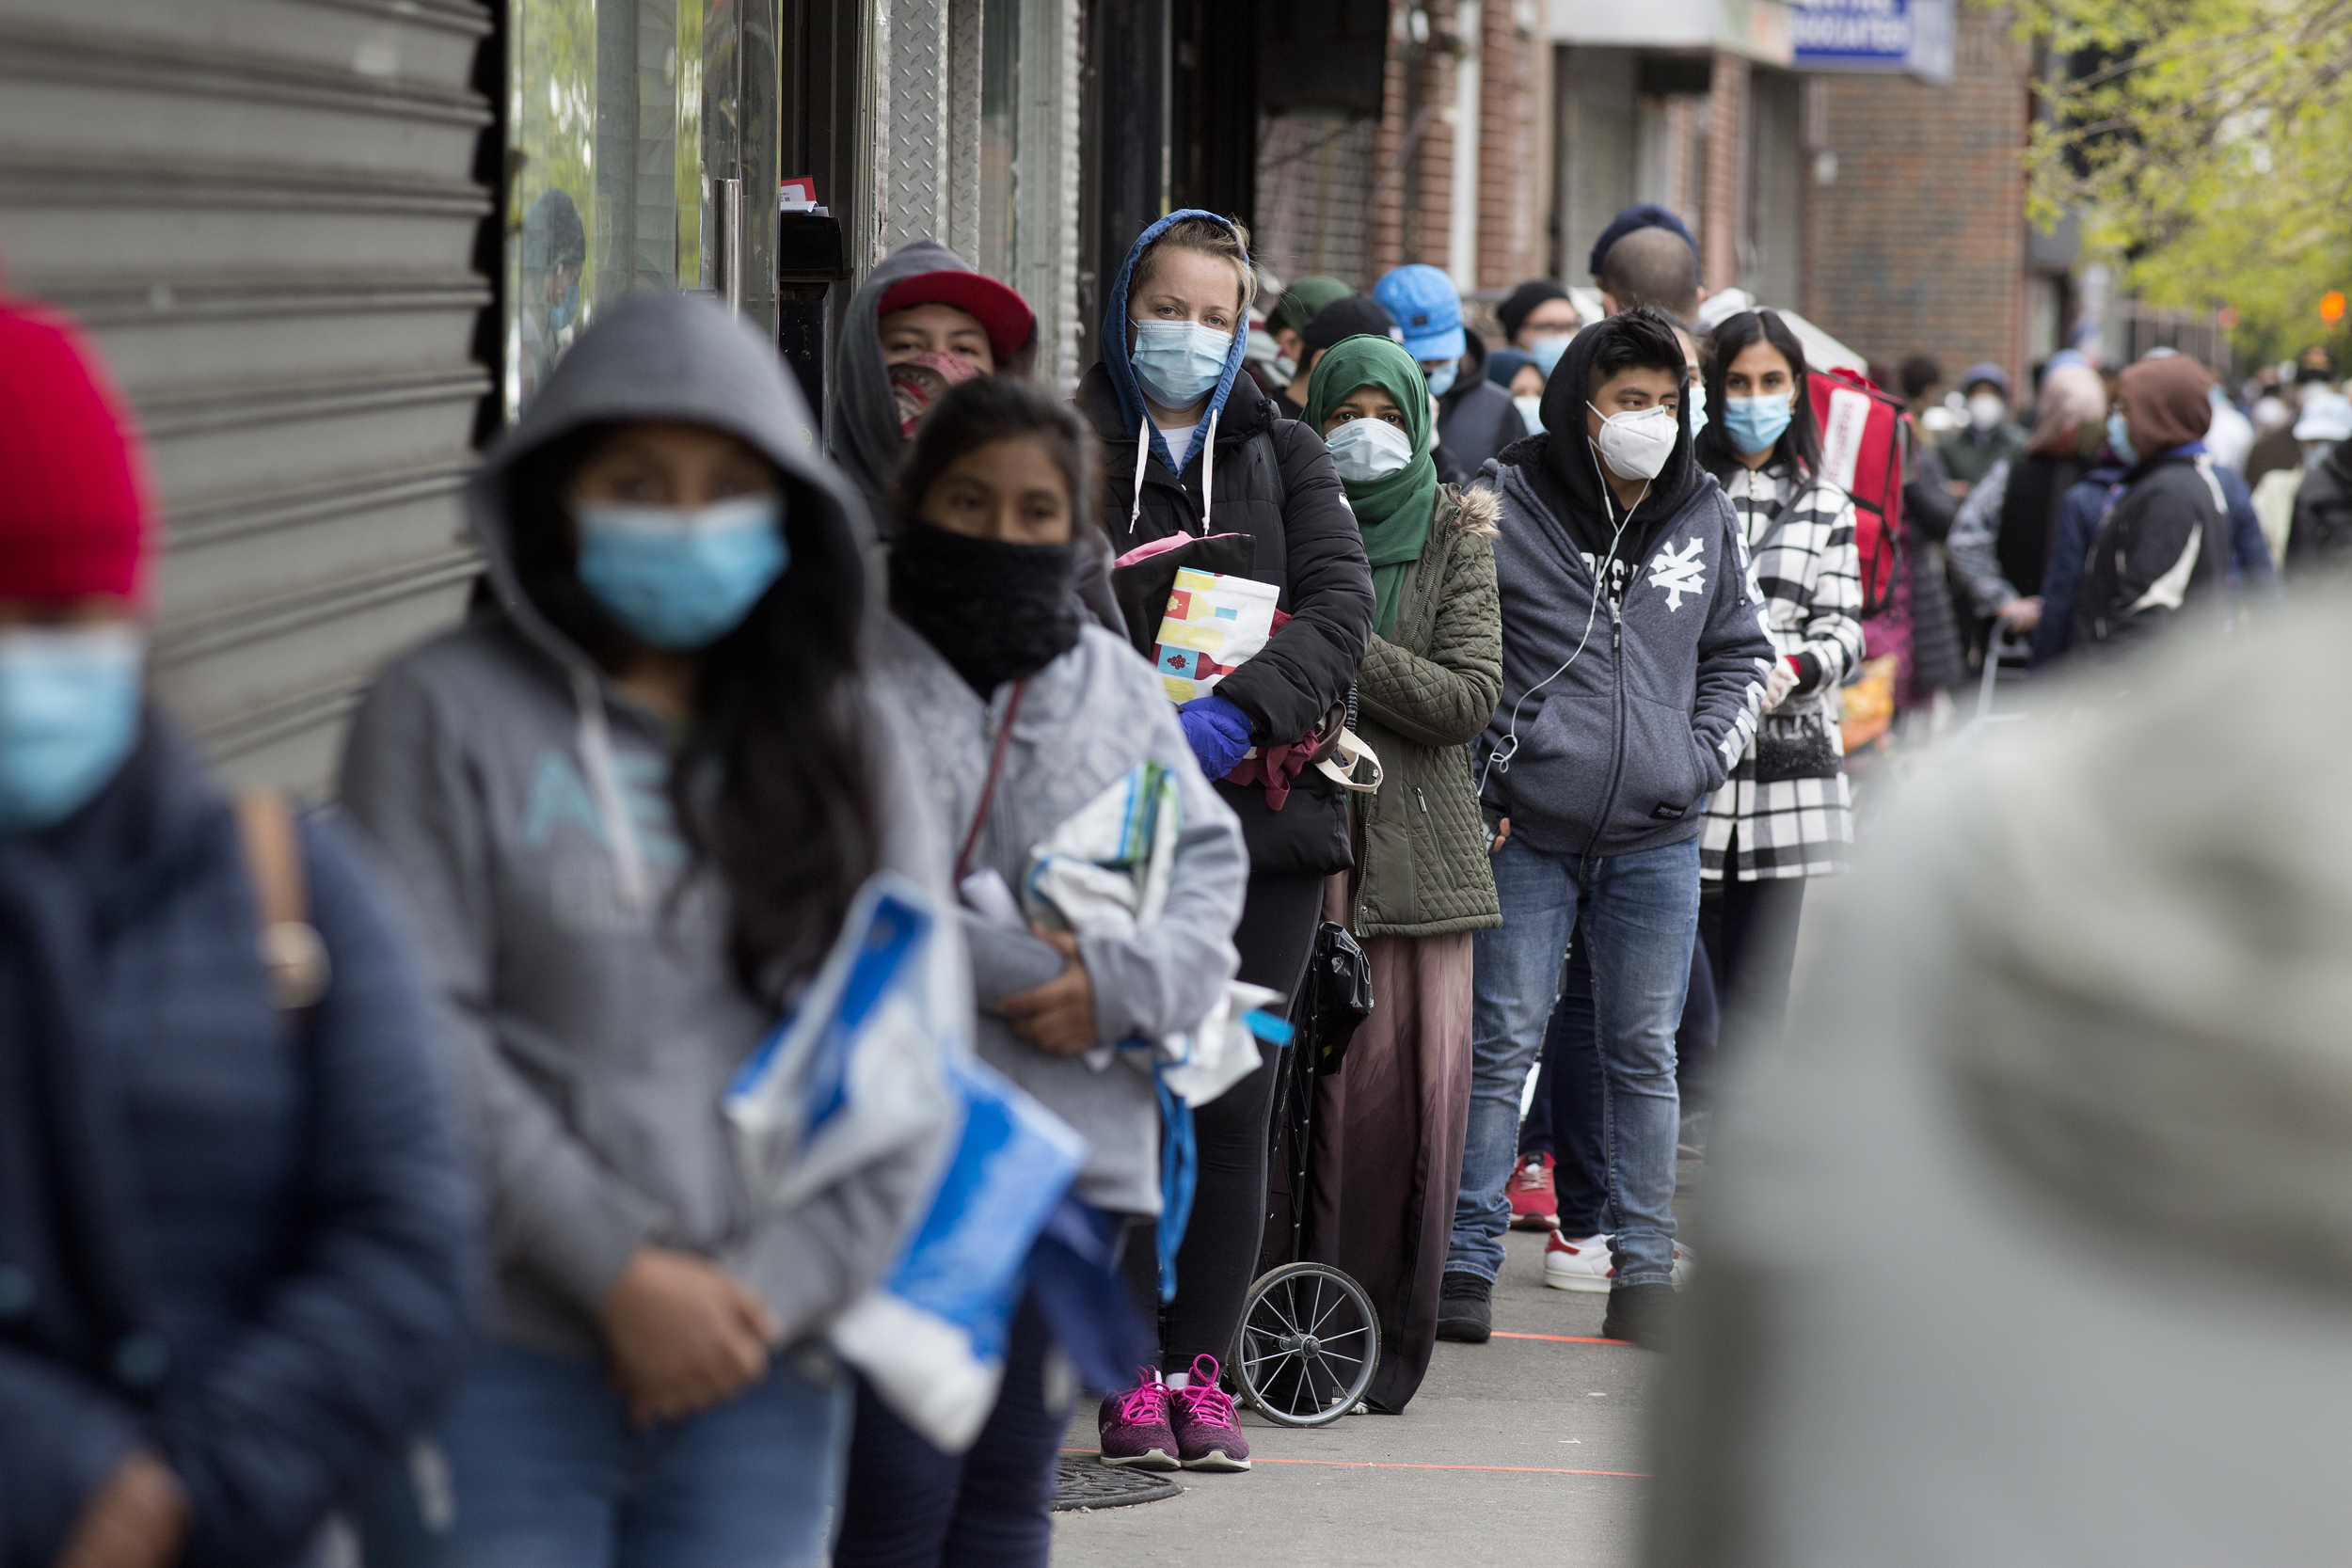 U.S. poverty declined overall last year due to pandemic relief, Census says